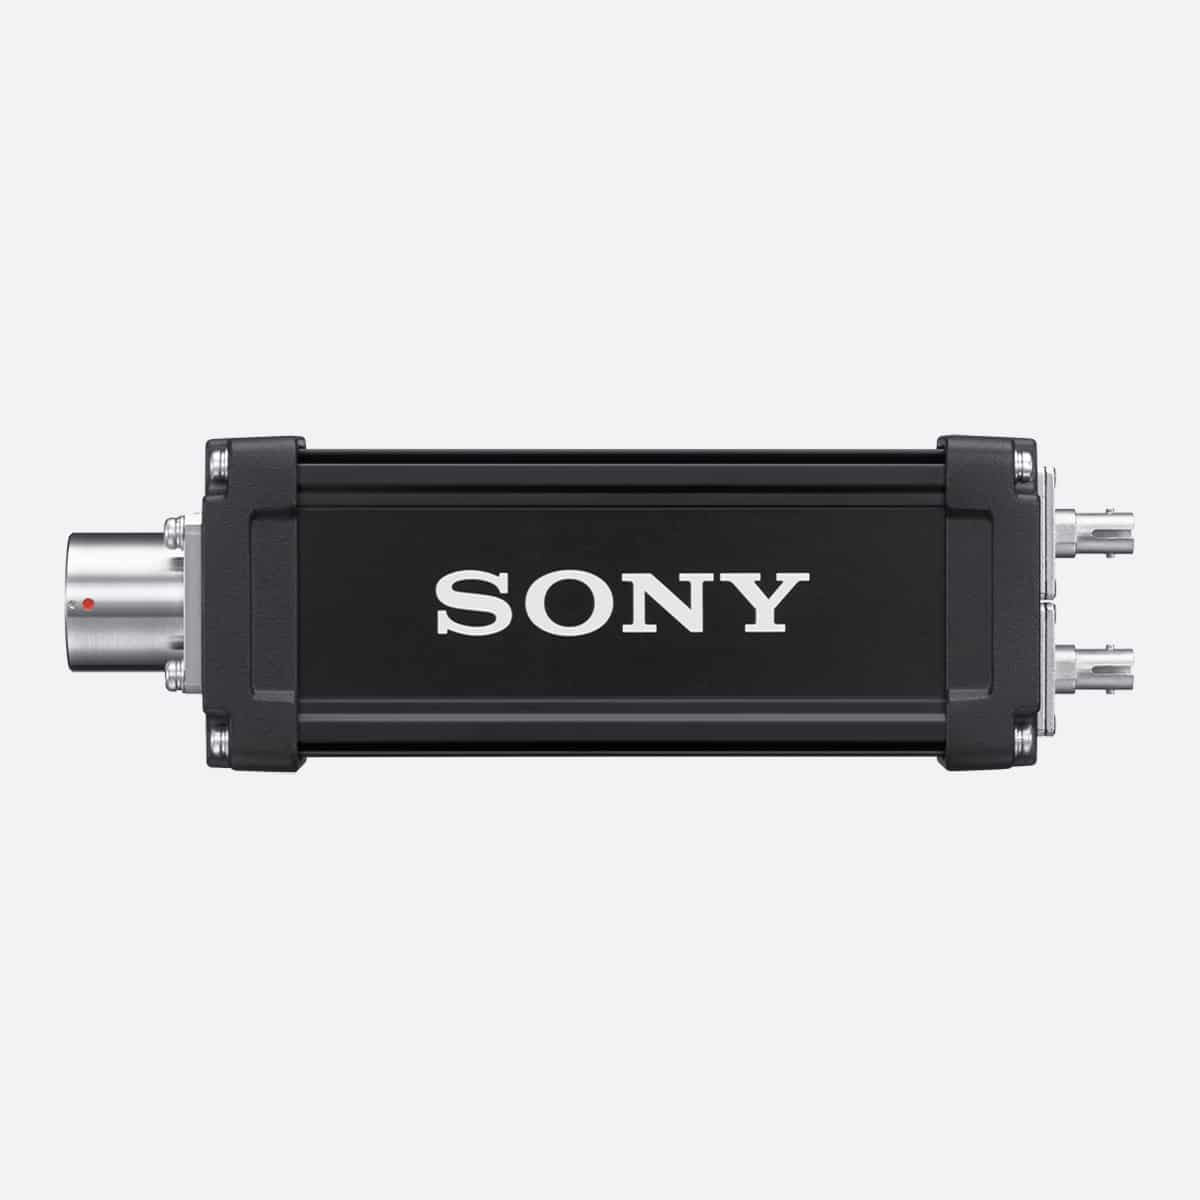 Sony HKCU-SM100 CCU extension adaptor